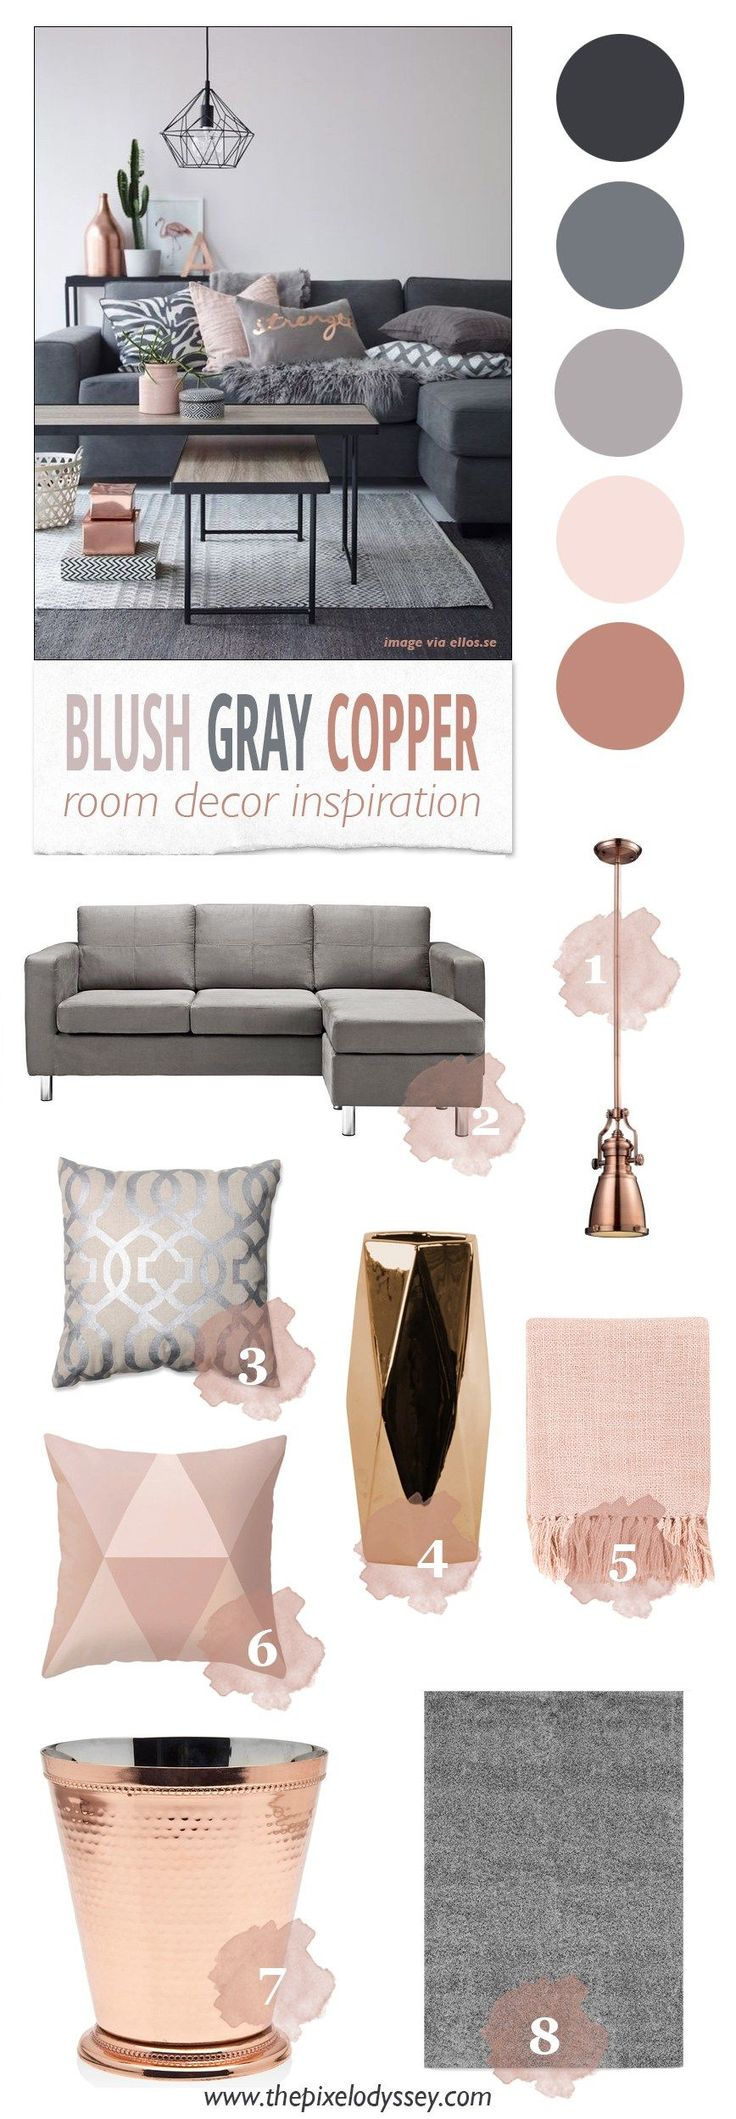 Blush Gray Copper Room Decor Inspo